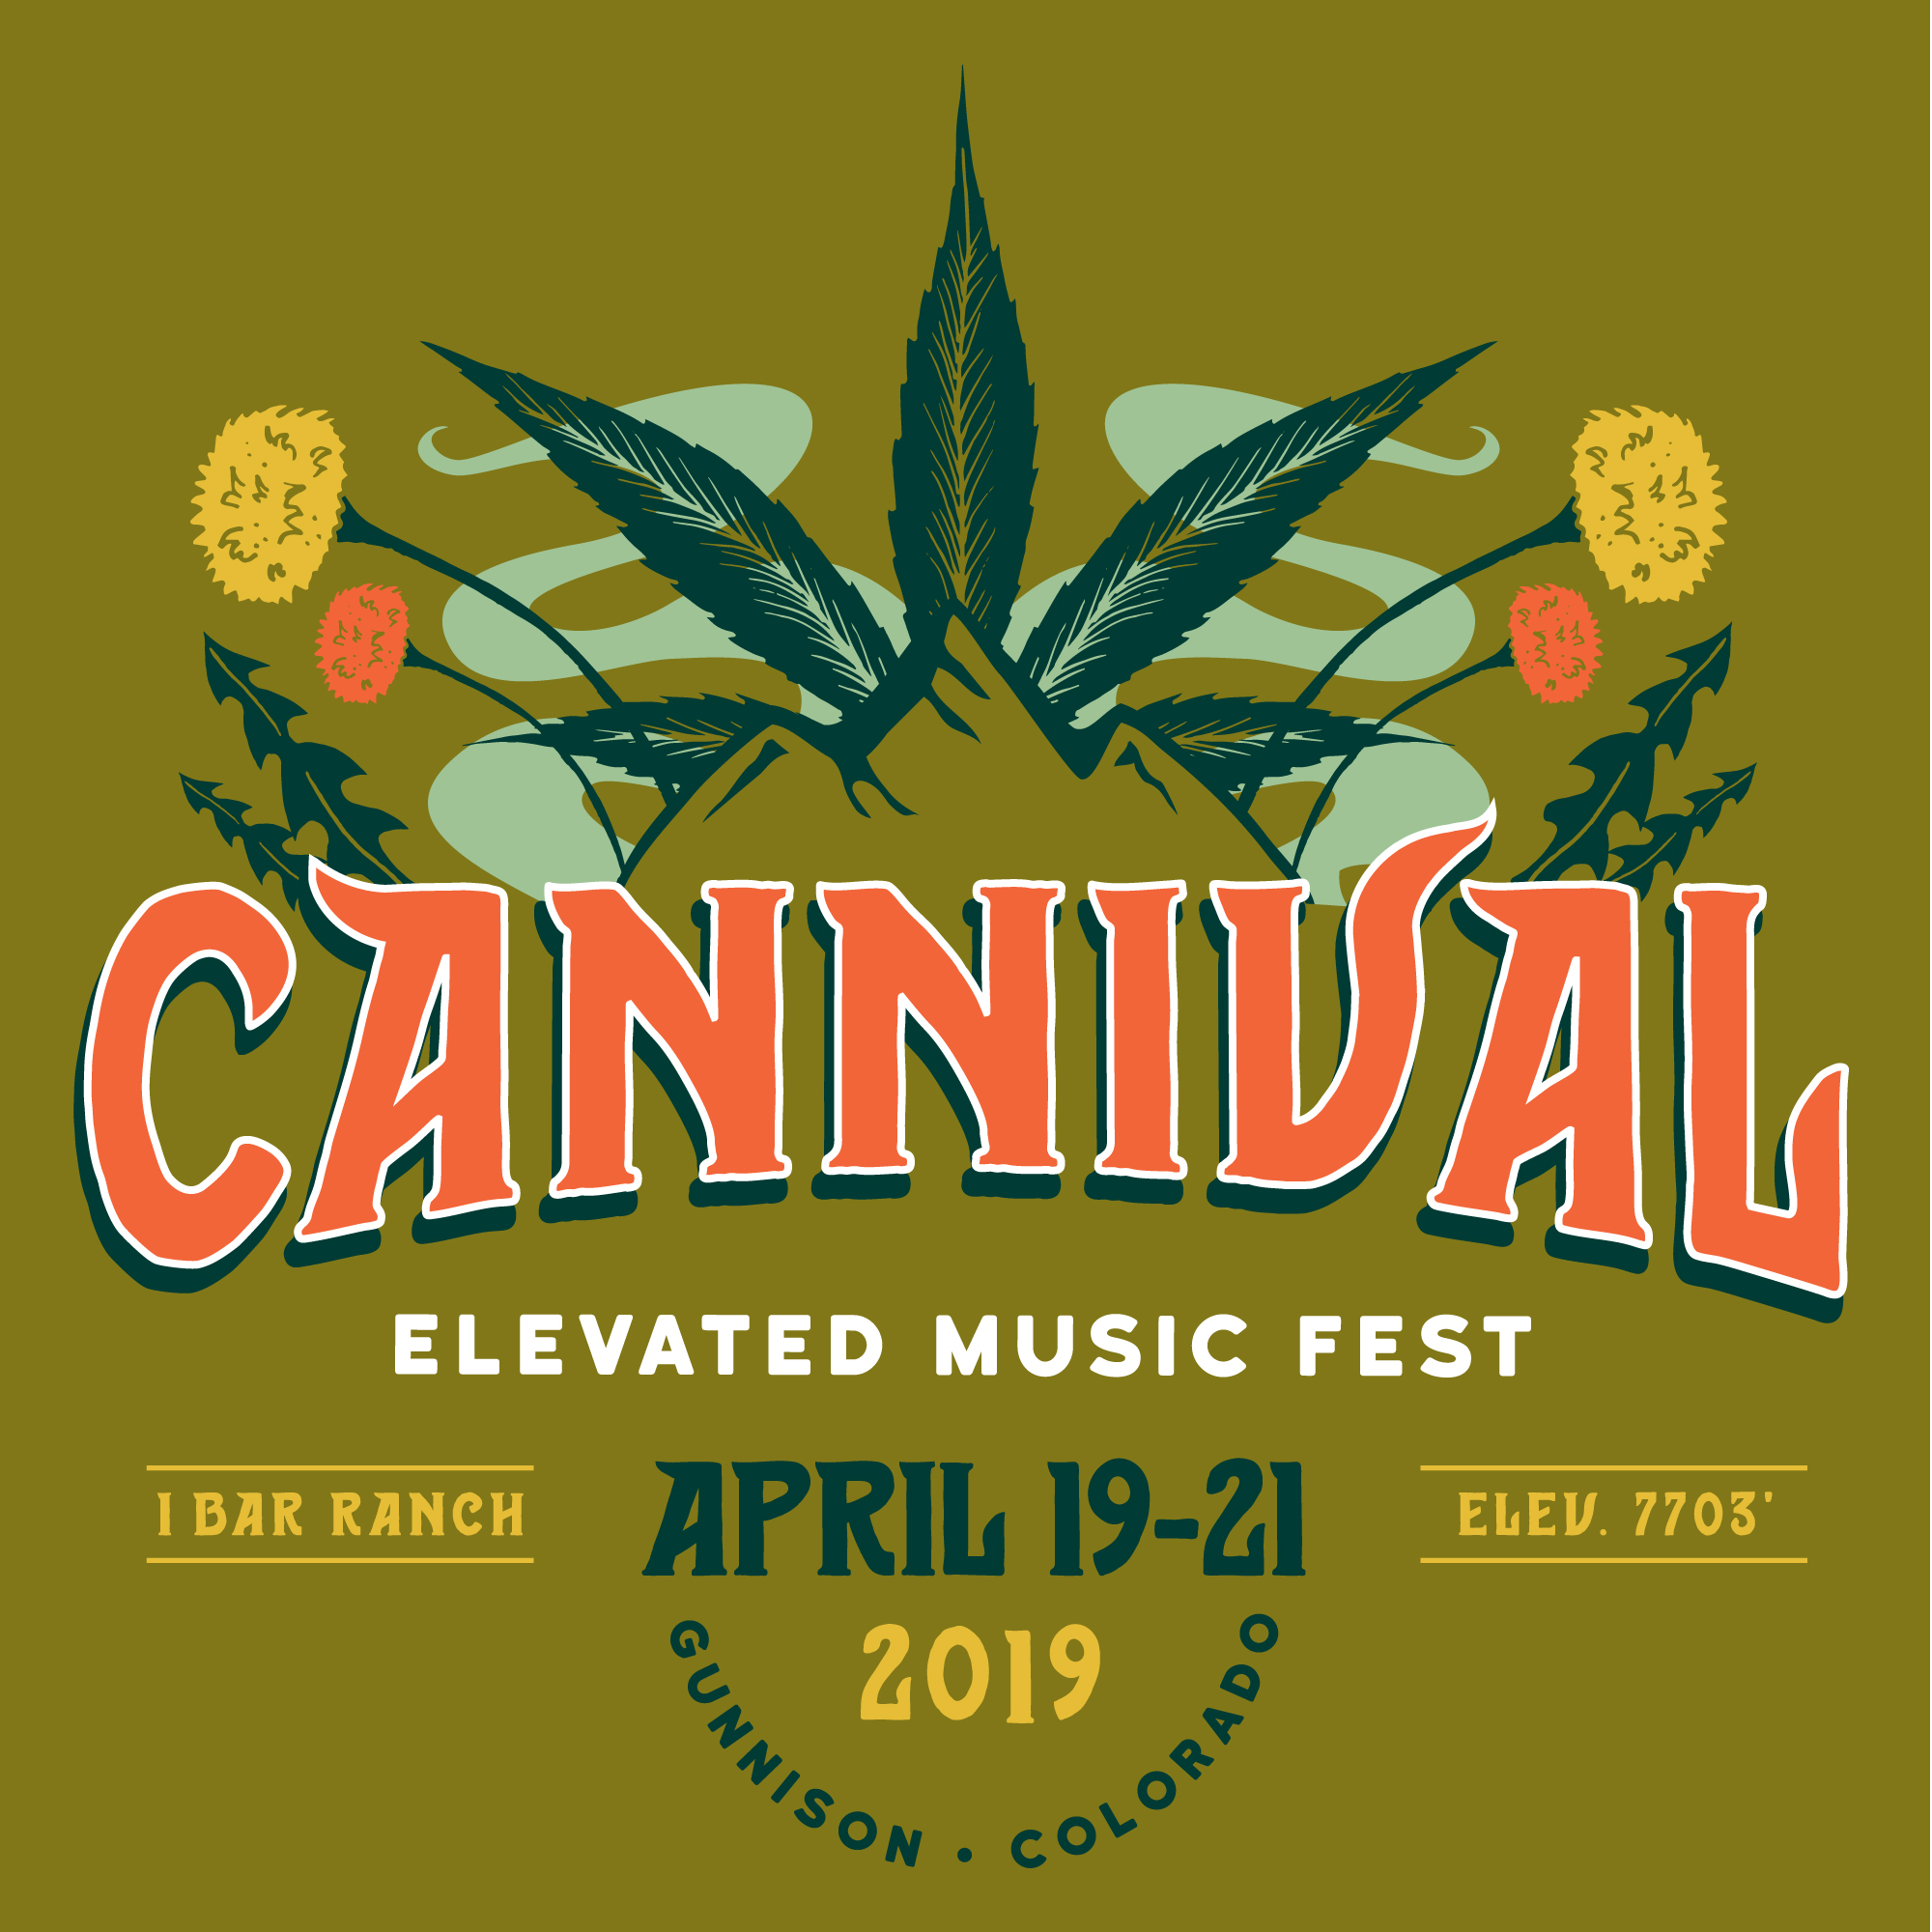 CANNIVAL_420-festival-artwork.jpg